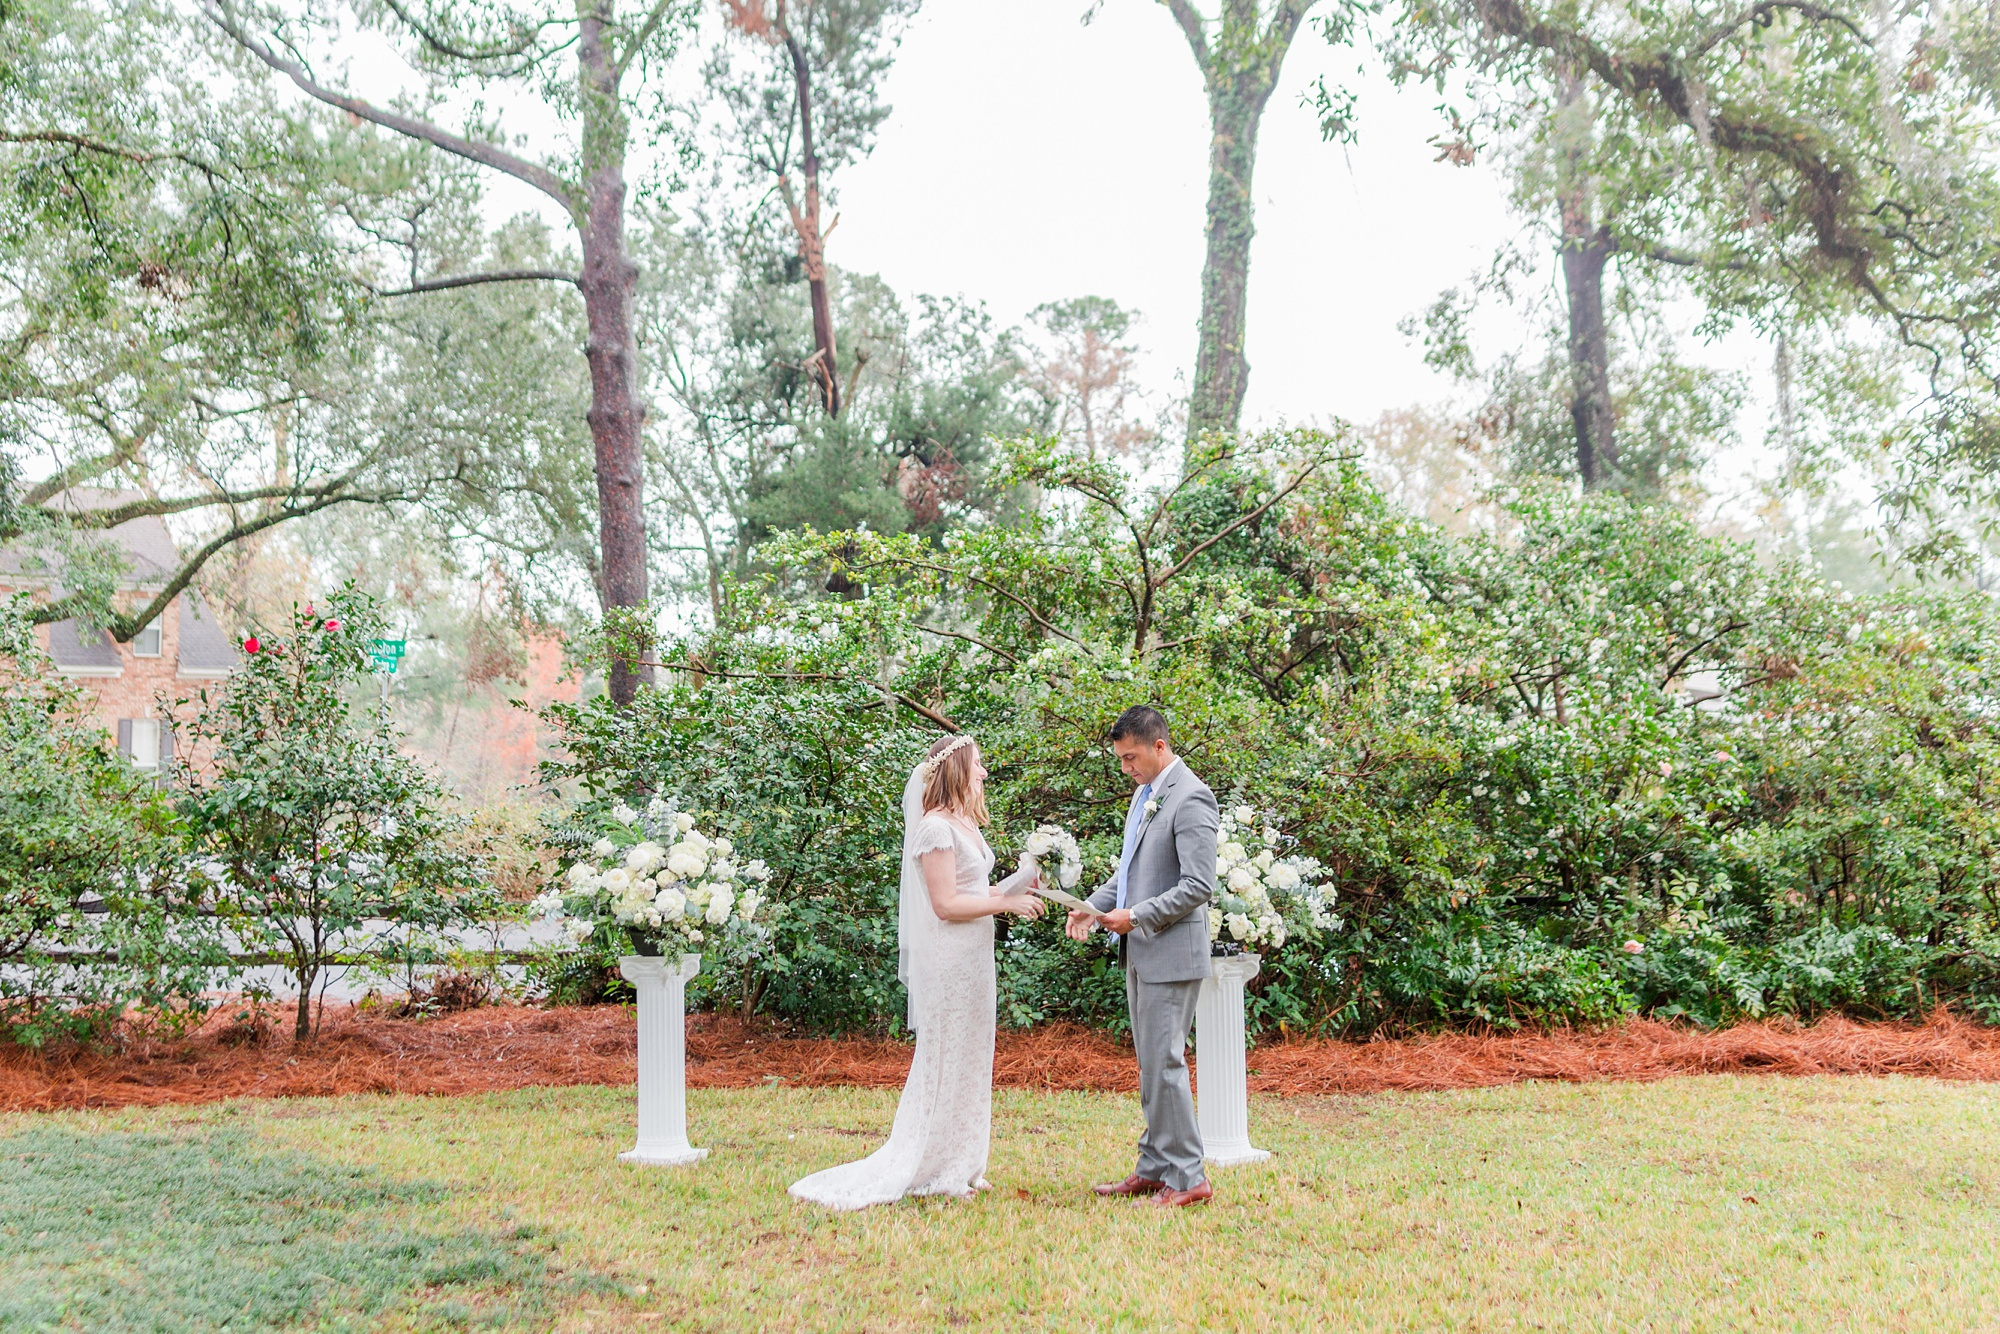 intimate Springhill wedding ceremony for bride and groom in backyard